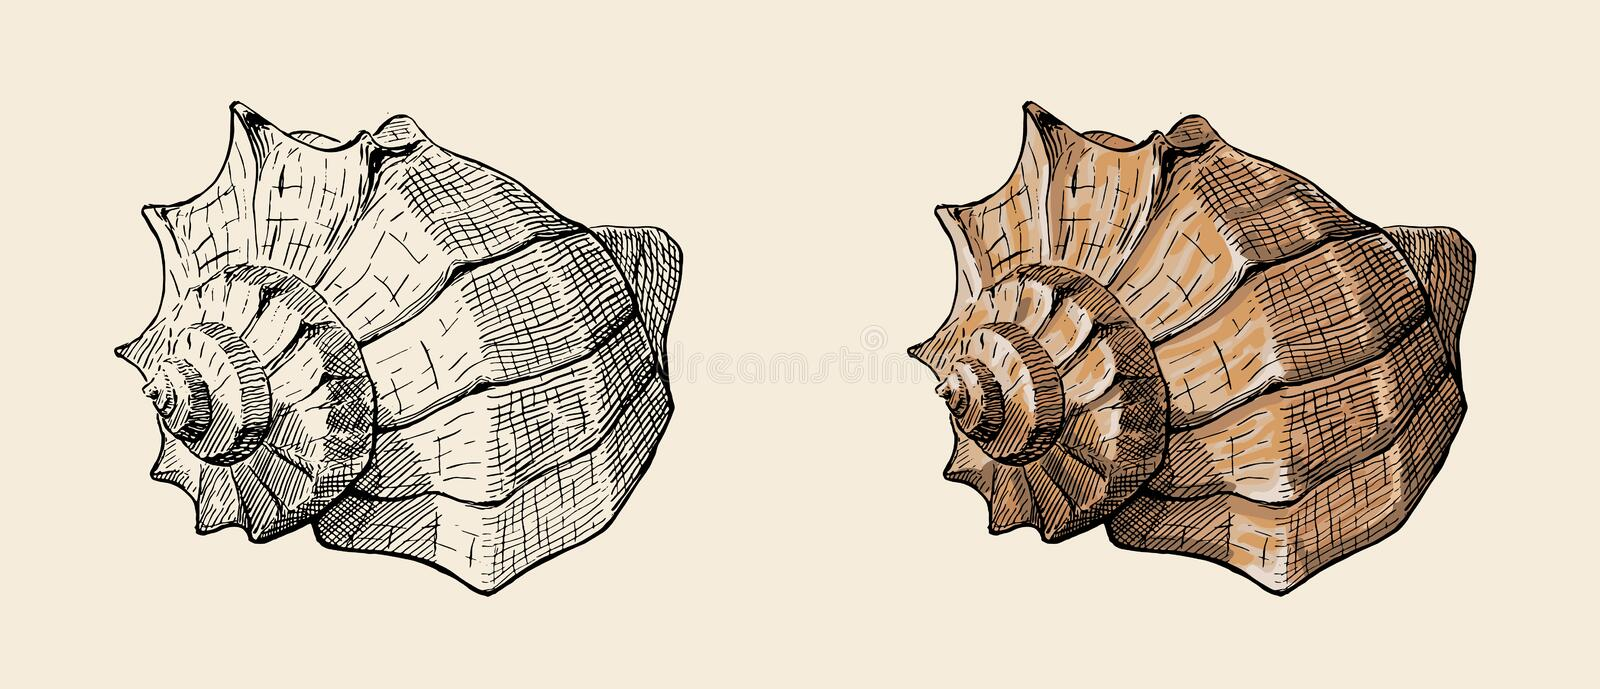 Spiral conch sea shell, hand drawn ink illustration, stock vector. Hand drawn vintage ink sketch of conch shell together with colorfully painted variant vector illustration